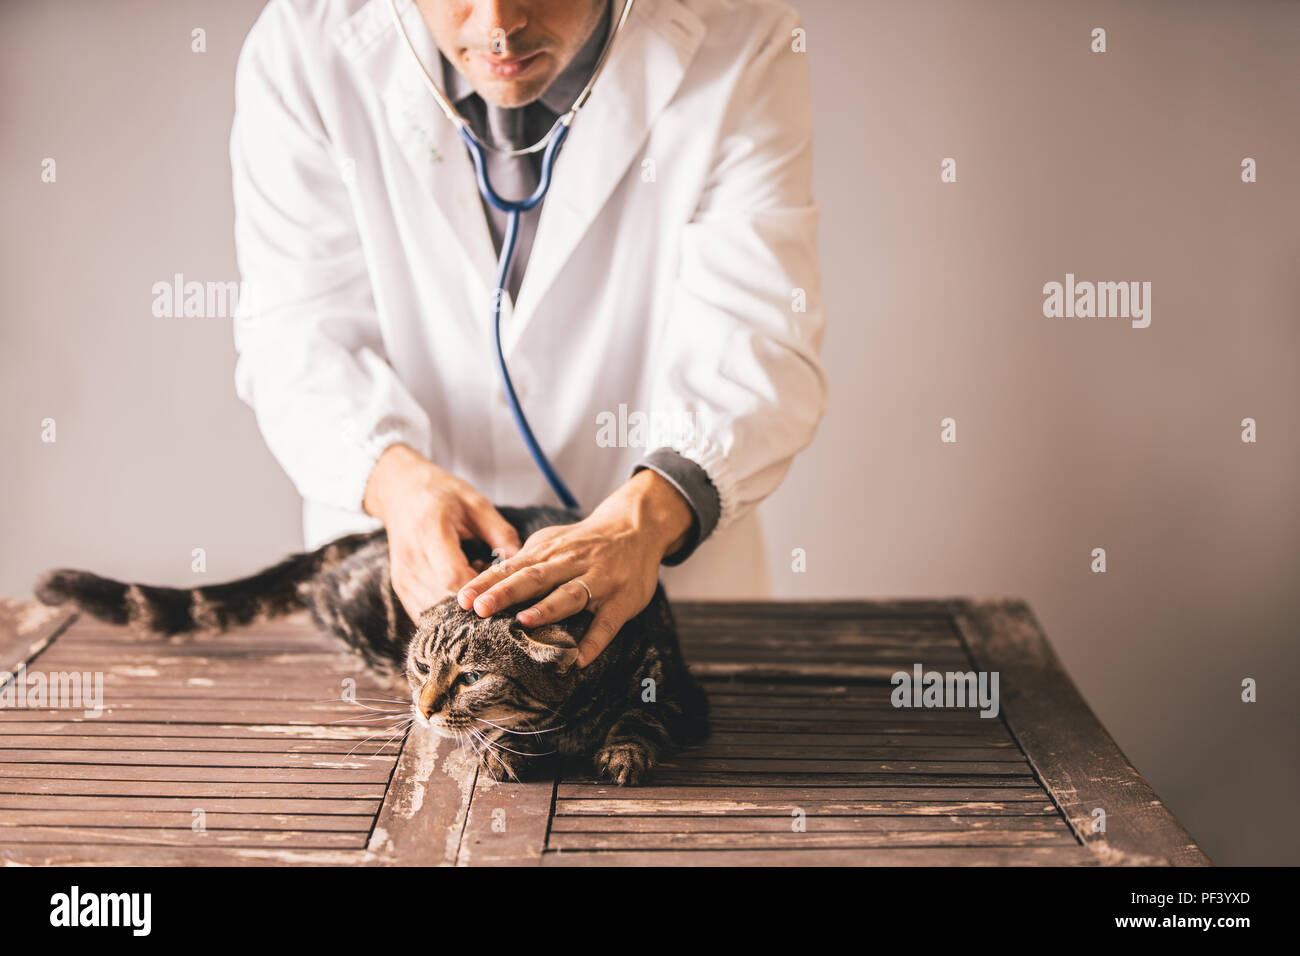 A veterinary doctor using a stethoscope on a tabby cat to check its health - Stock Image